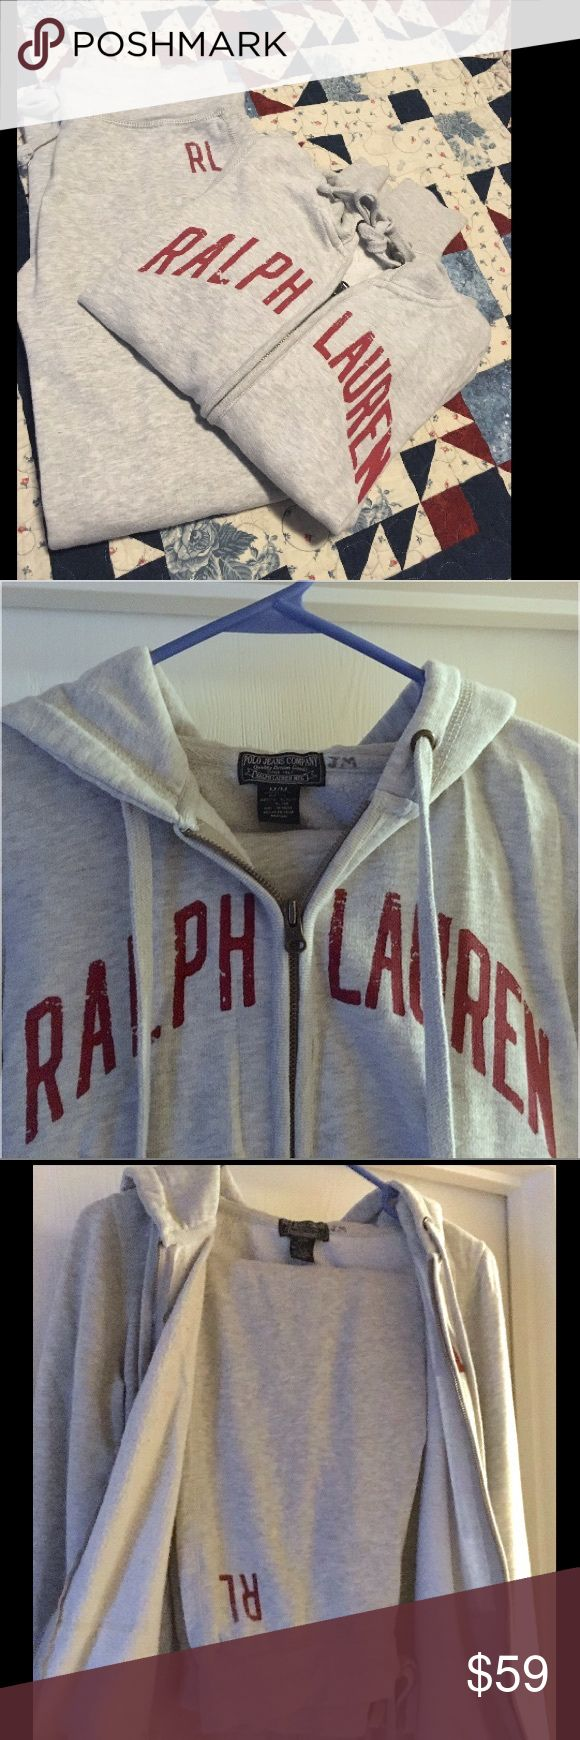 Ralph Lauren Grey JoggingSuit/Hoodie/Sweatpants S Ralph Lauren Small Grey Jogging Suit, Zip up Hoodie w/ Pockets & Sweatpants. Nice Set. MAKE AN OFFER Polo by Ralph Lauren Other